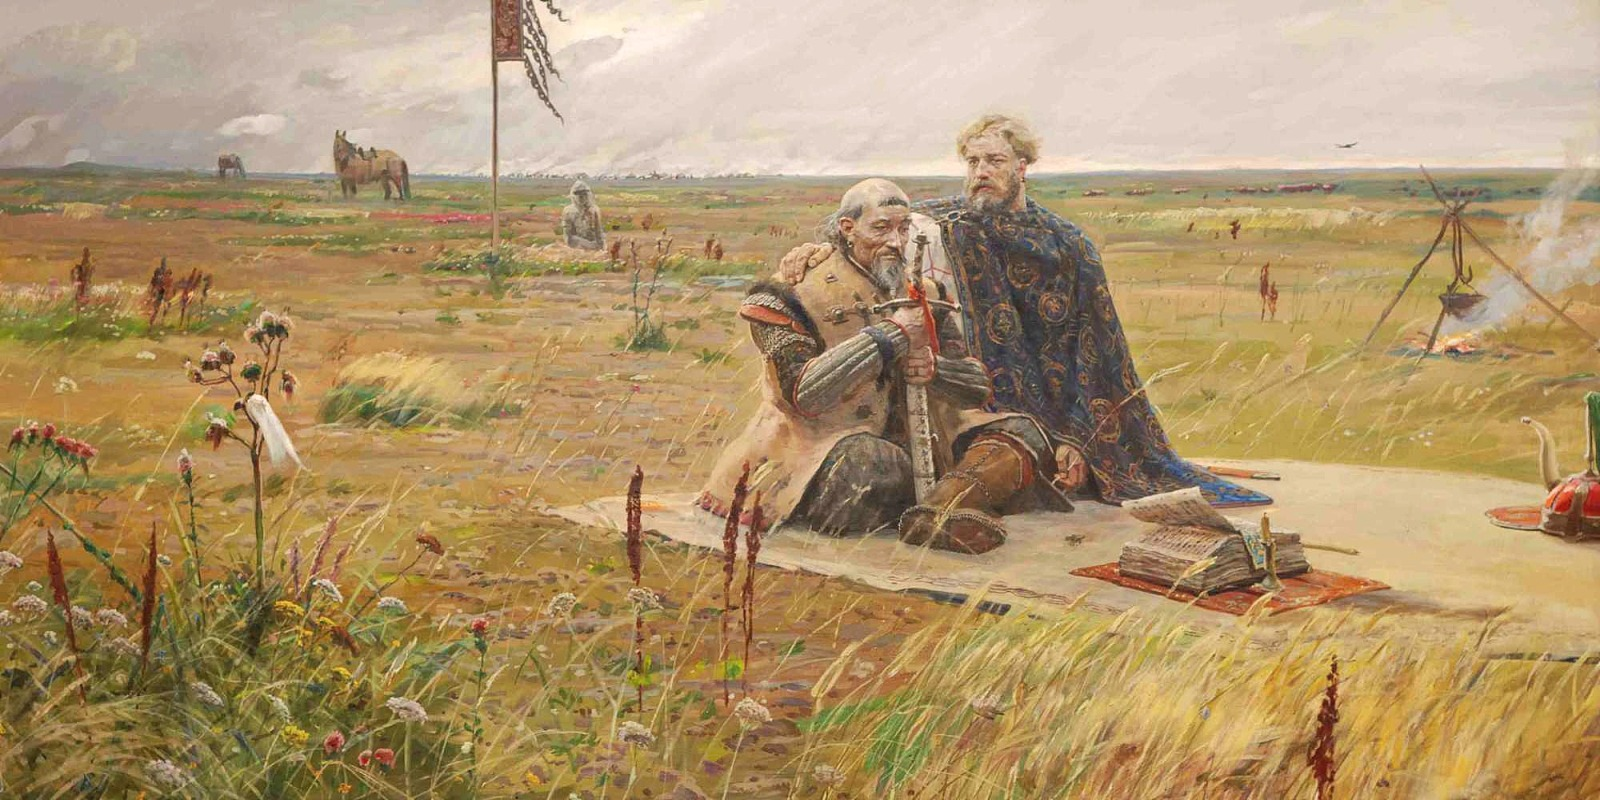 00-00-pavel-ryzhenko-sartag-from-the-triptych-the-shining-russian-land-2009